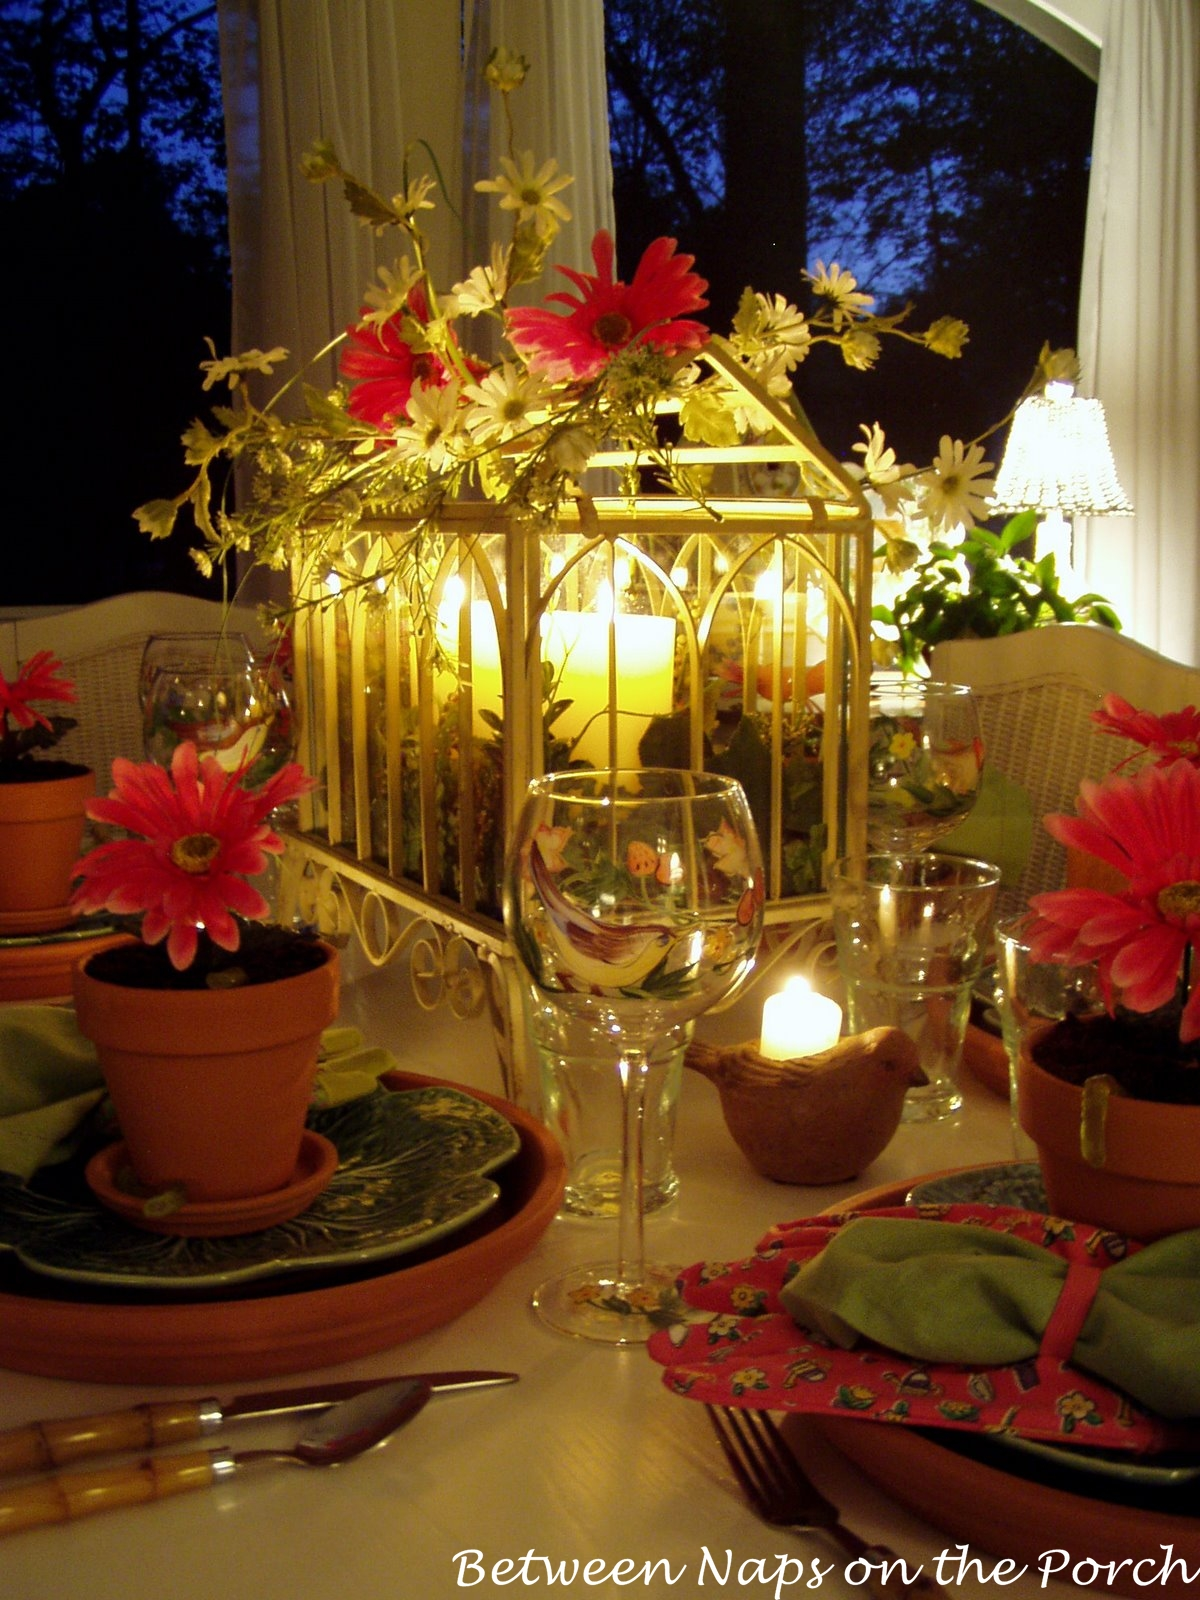 Garden party table setting with flower pot chargers